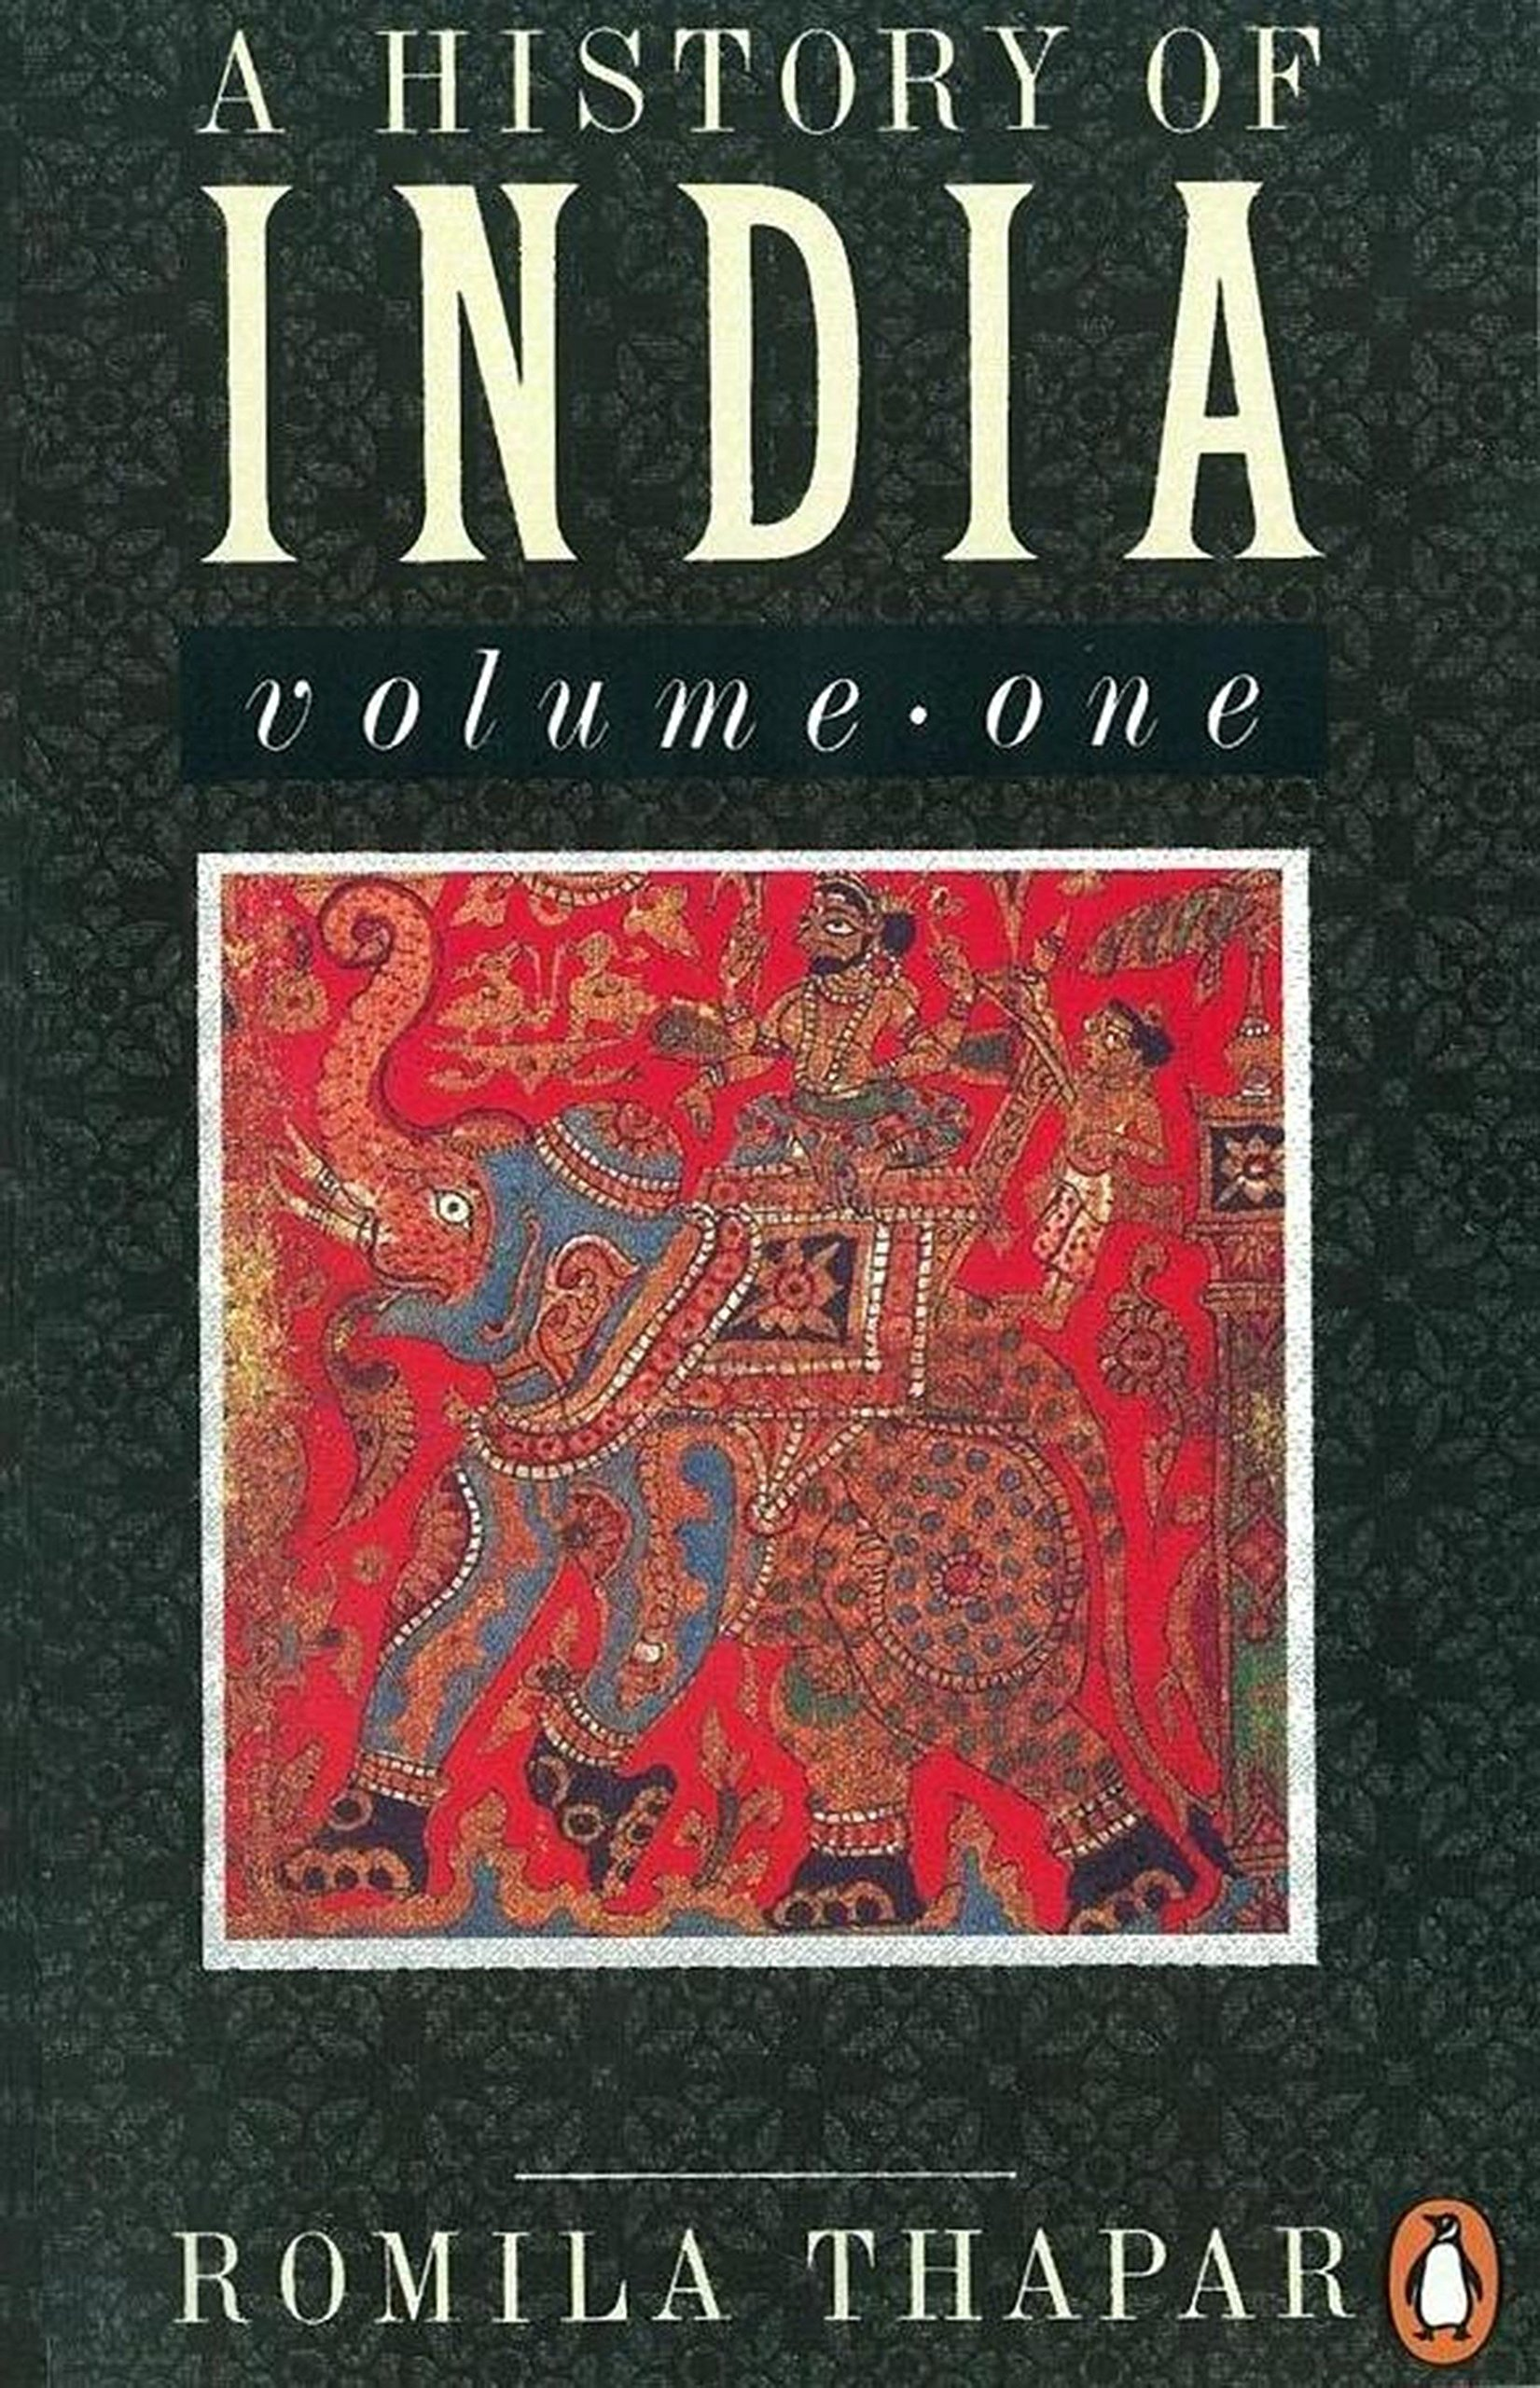 Ancient india by romila thapar (school book).